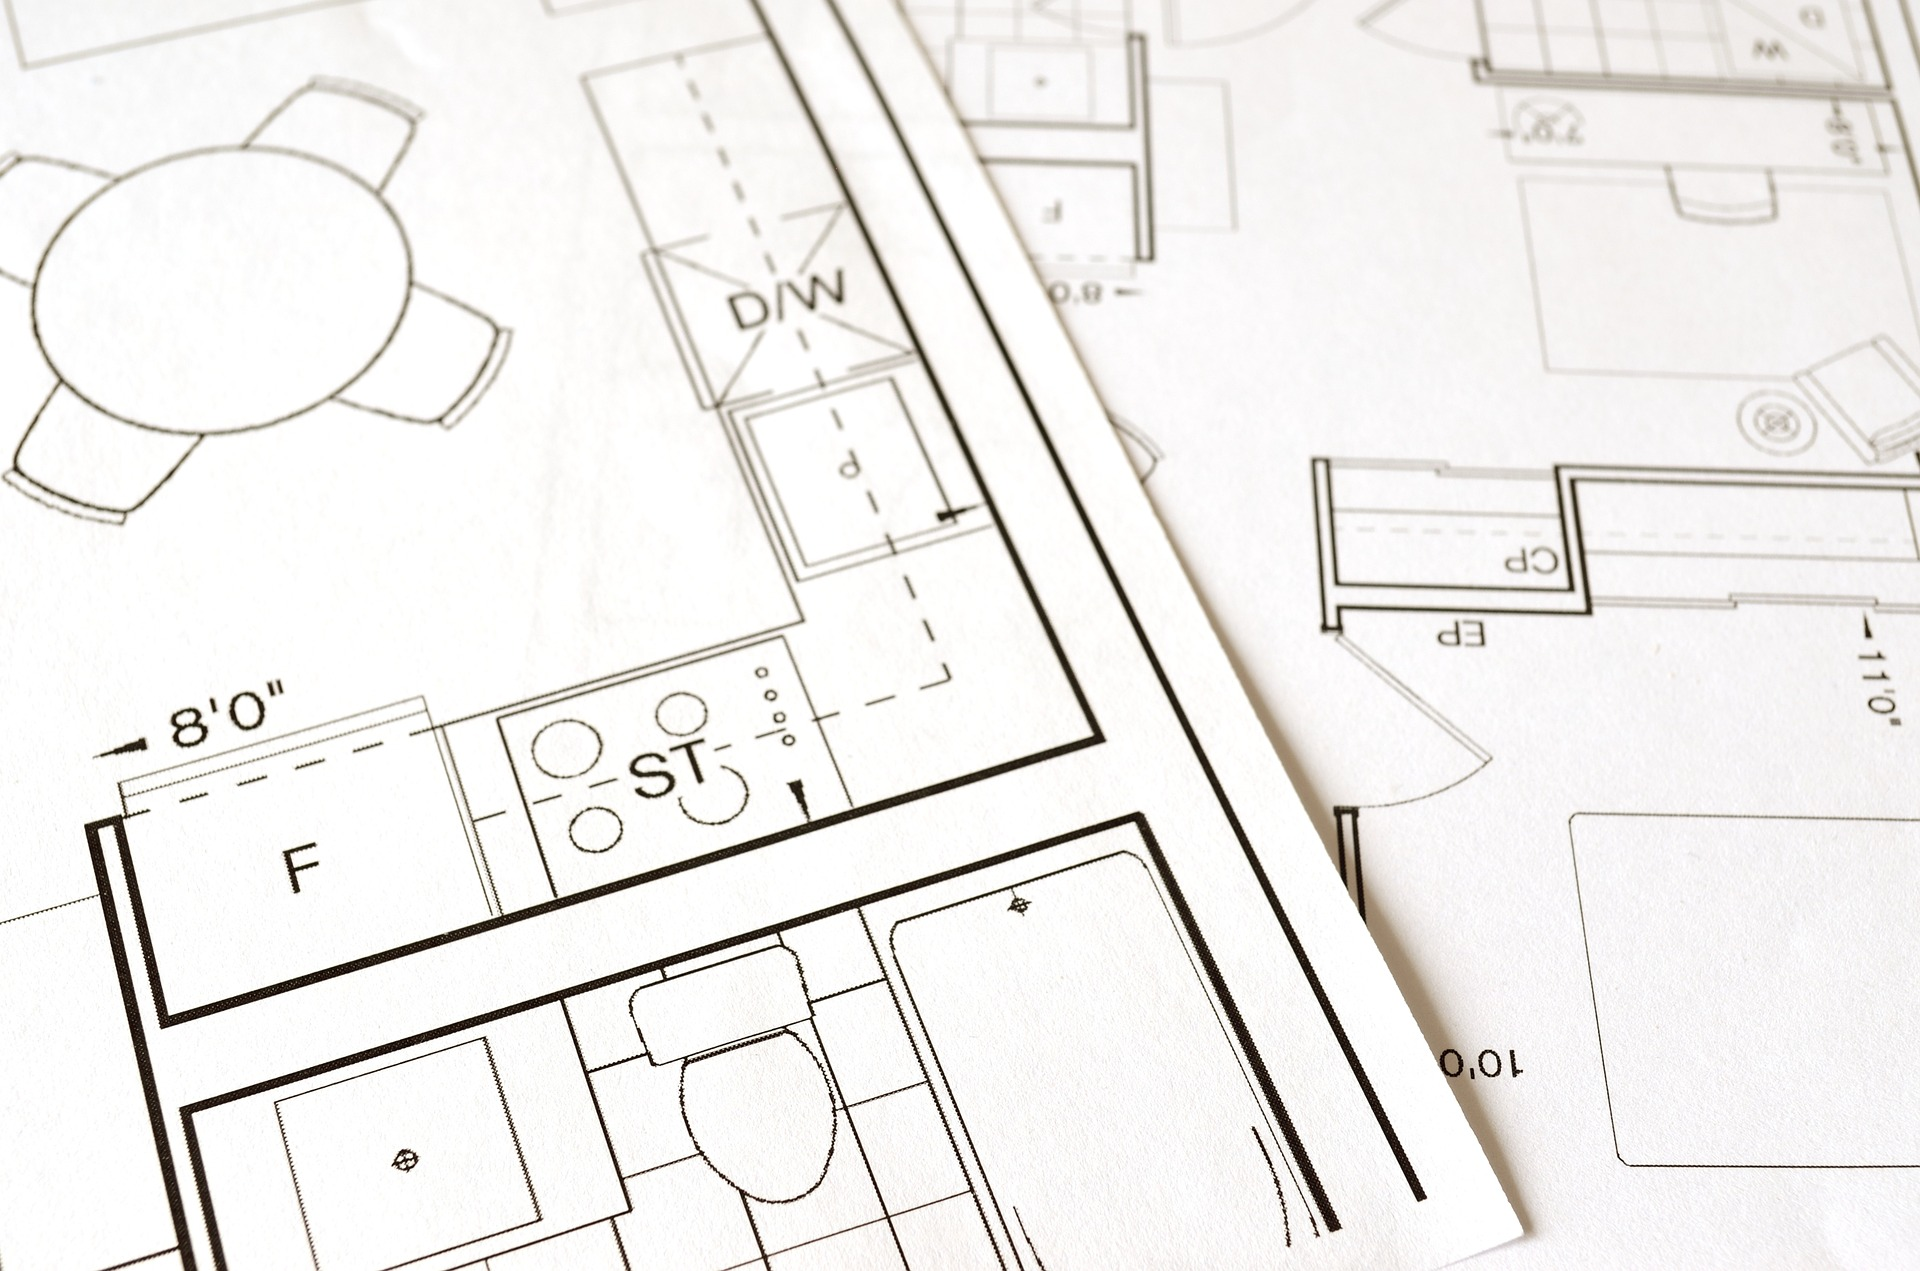 Black and white architectural floor plans showing a kitchen and bathroom on the One Stop Plumbing page for Plumbing Remodeling